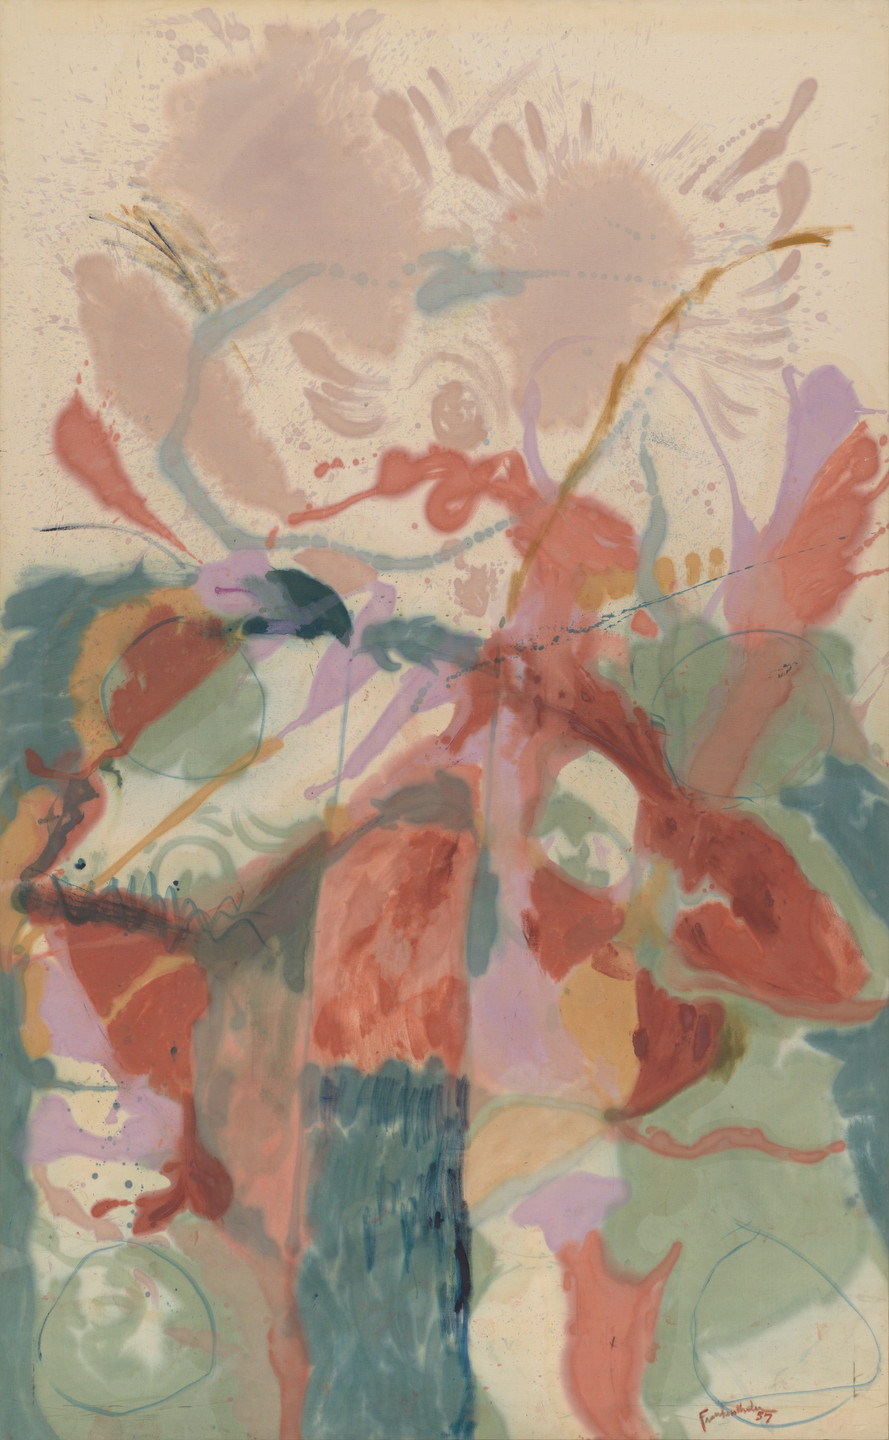 Helen Frankenthaler. Jacob's Ladder. 1957